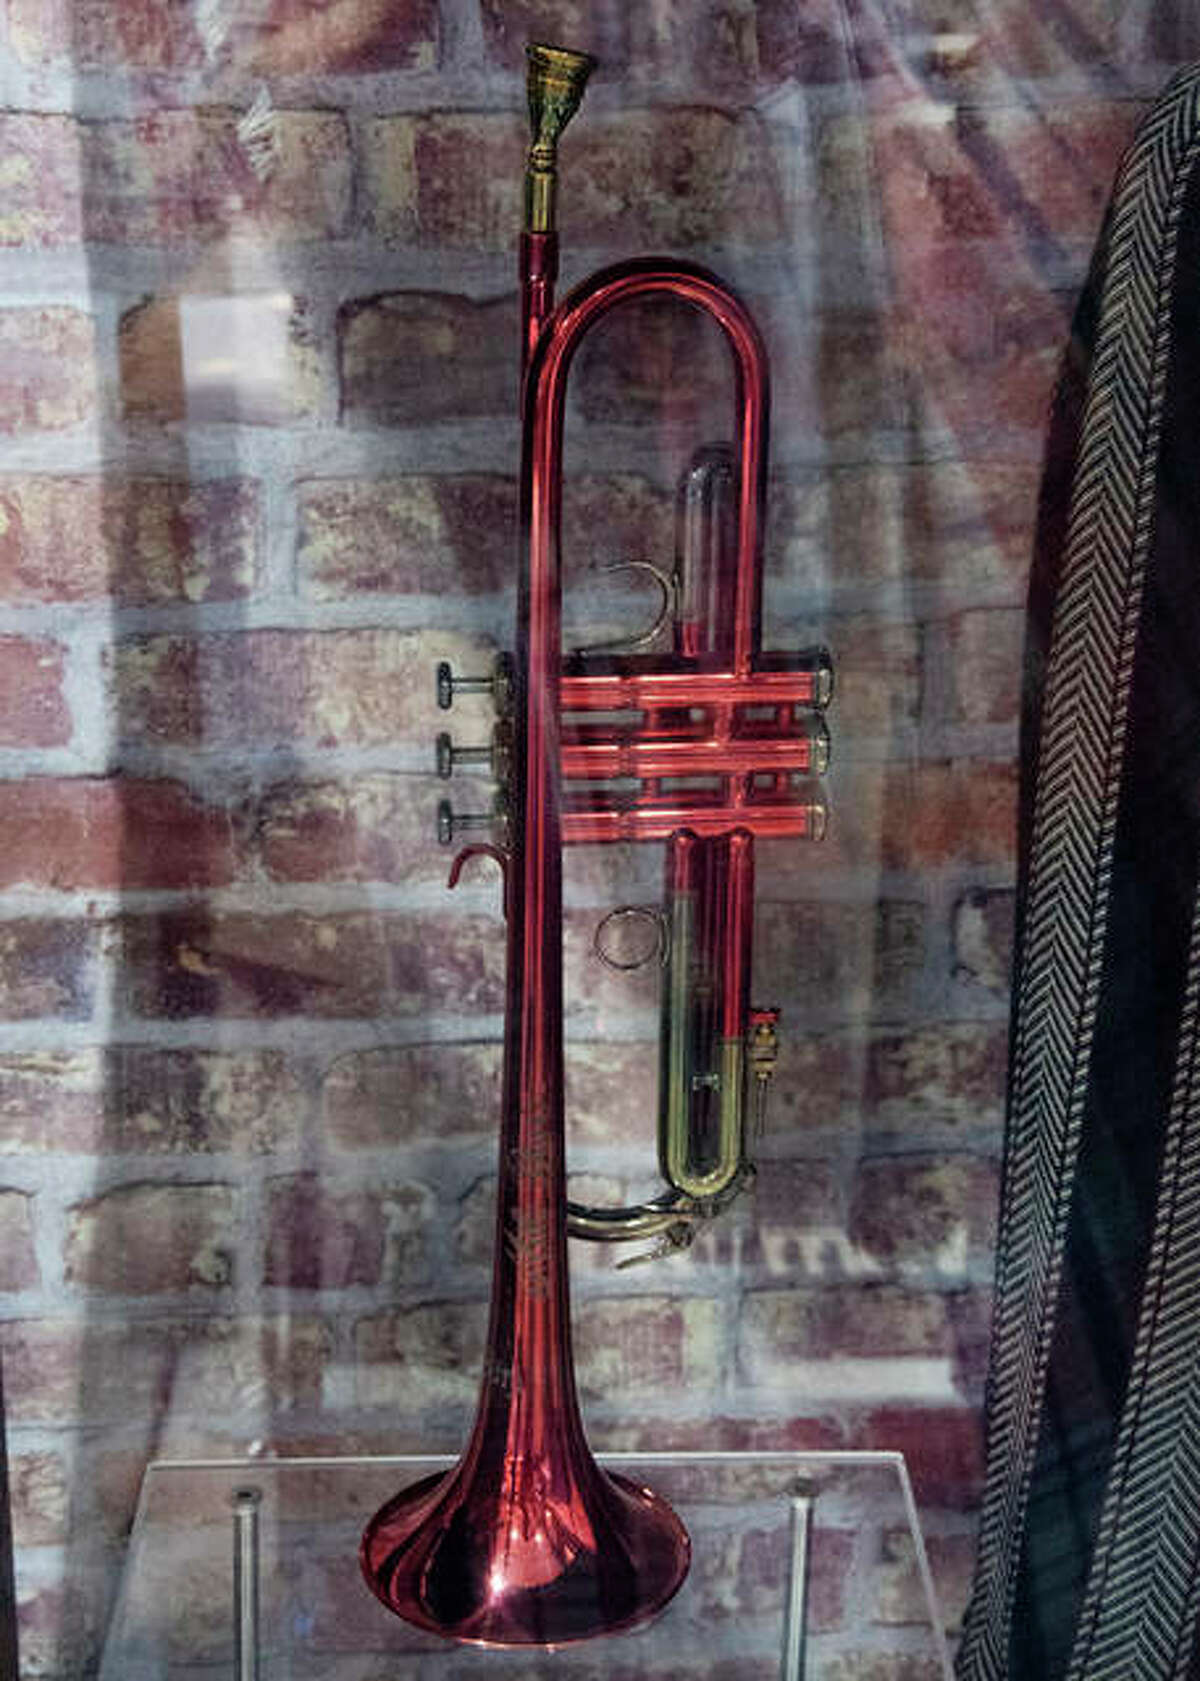 Miles Davis' custom made red trumpet is part of the